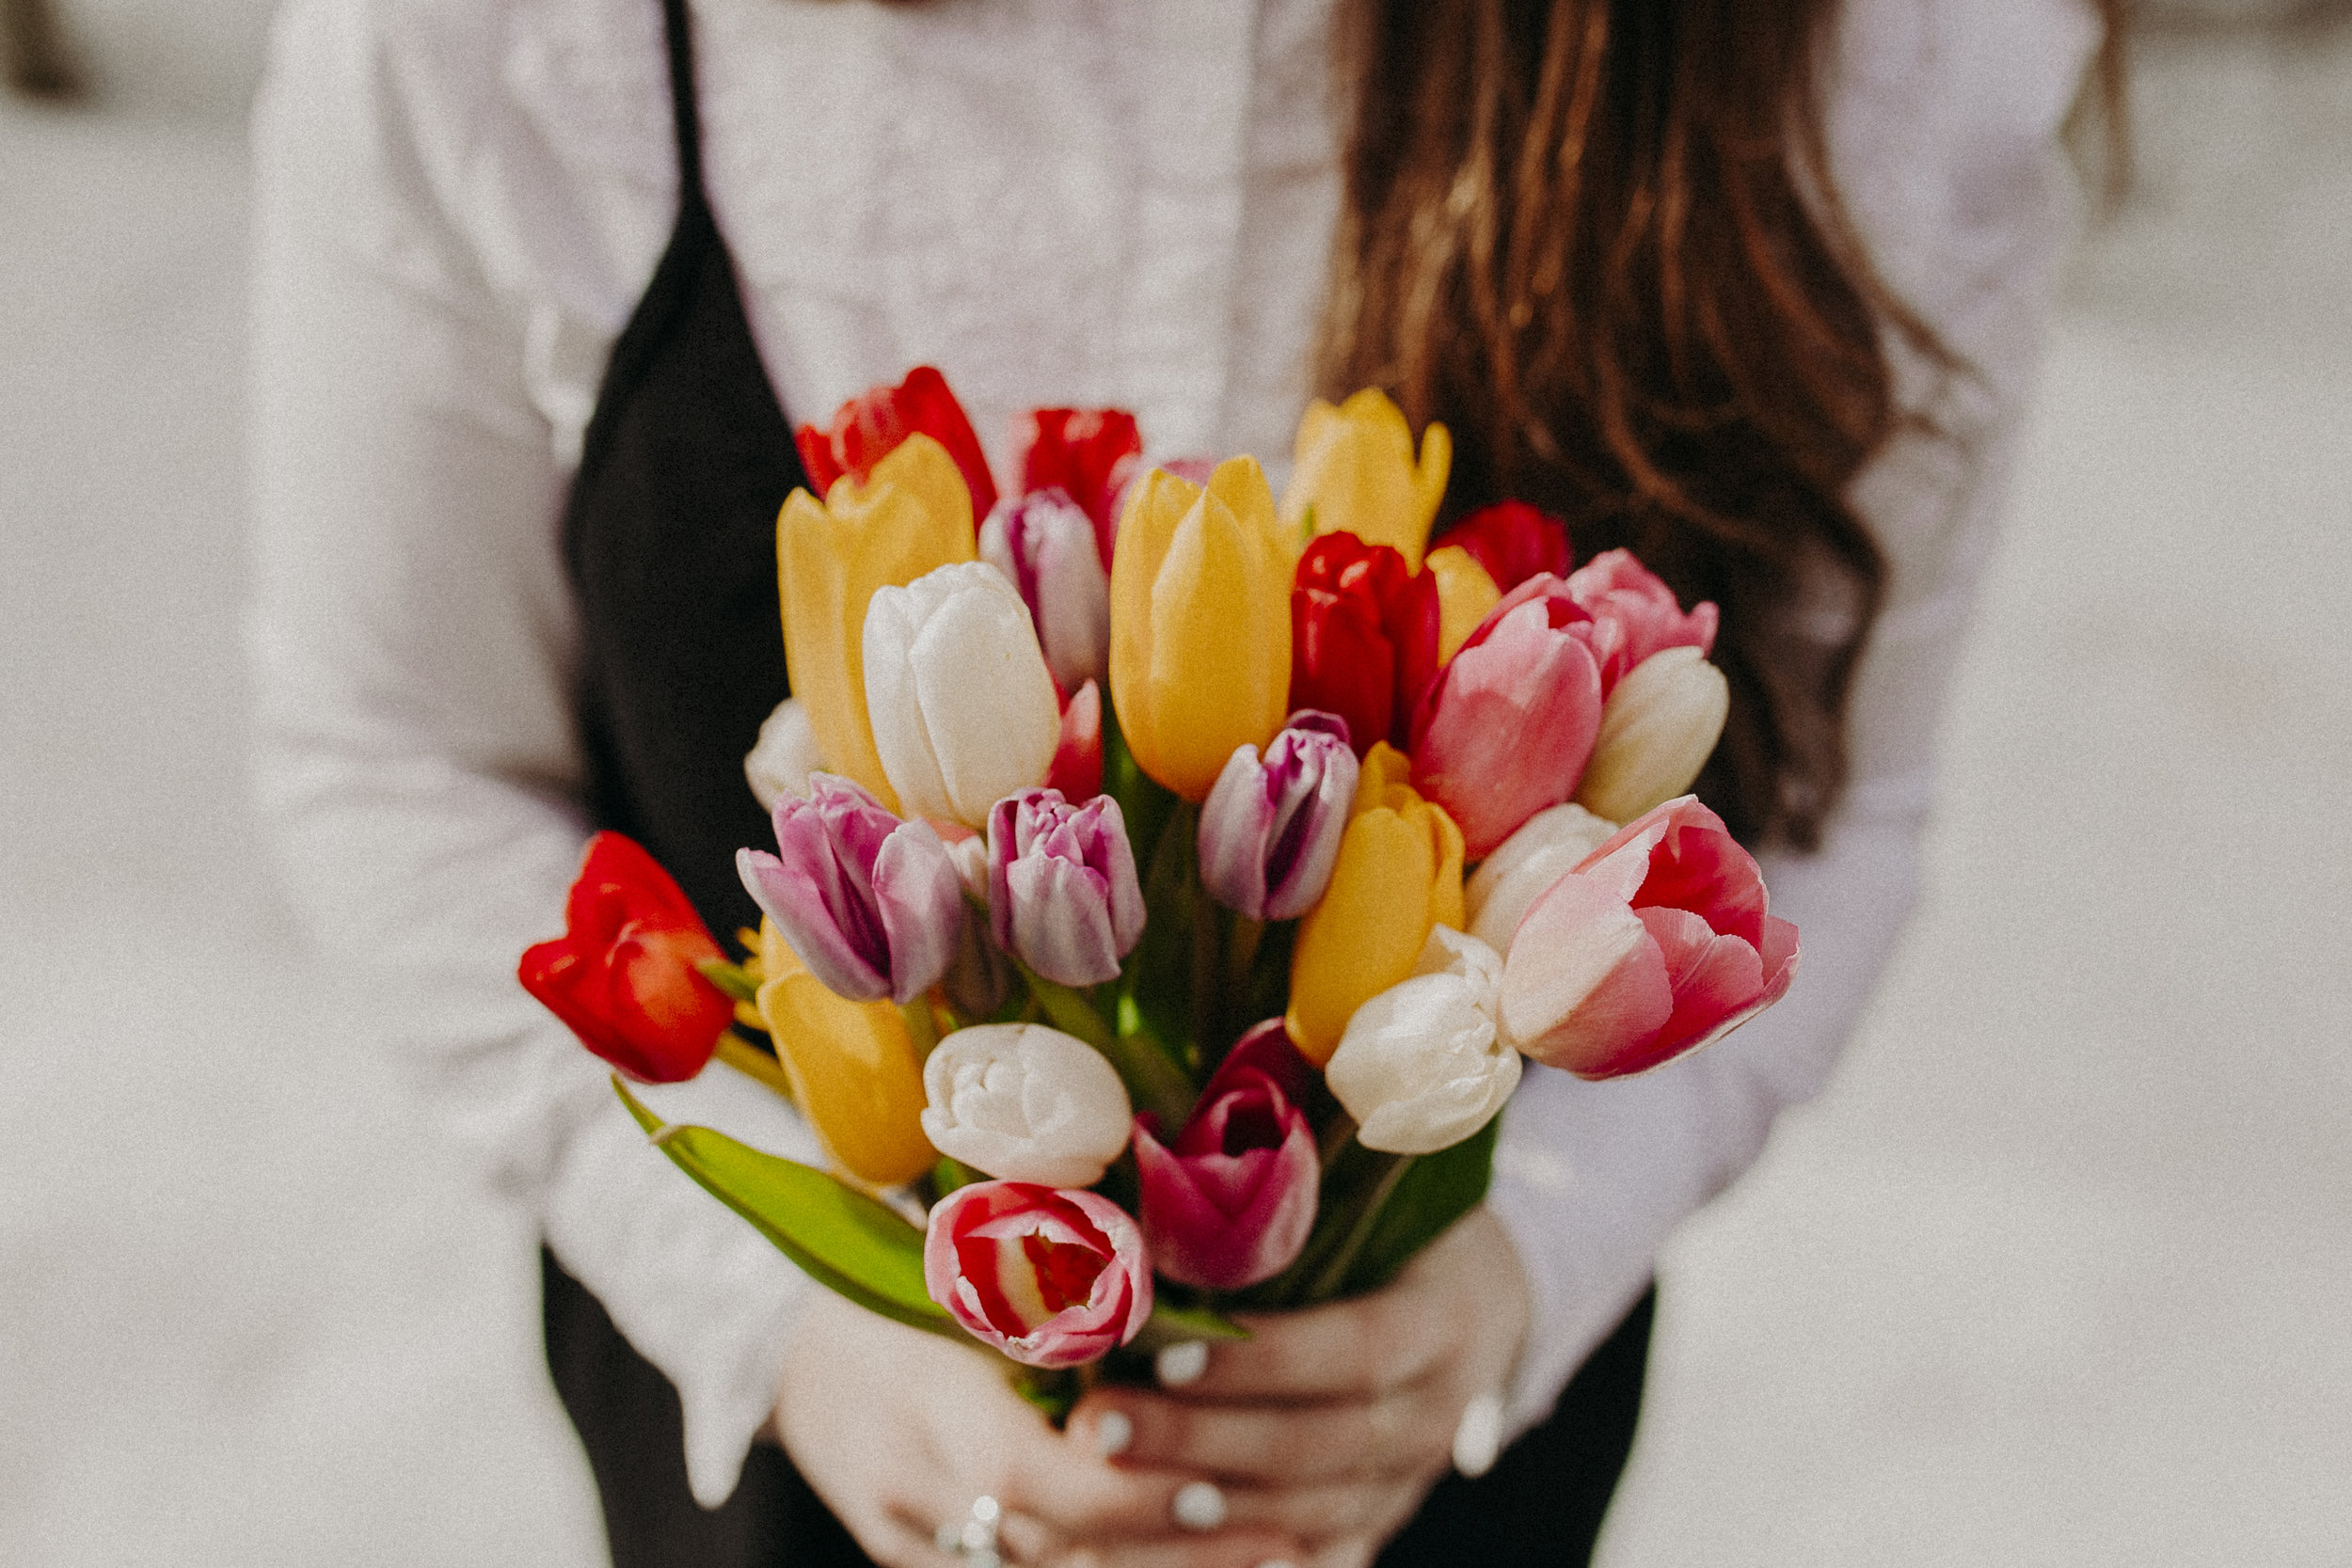 the-bouqs-flower-delivery-service-review-15.jpg